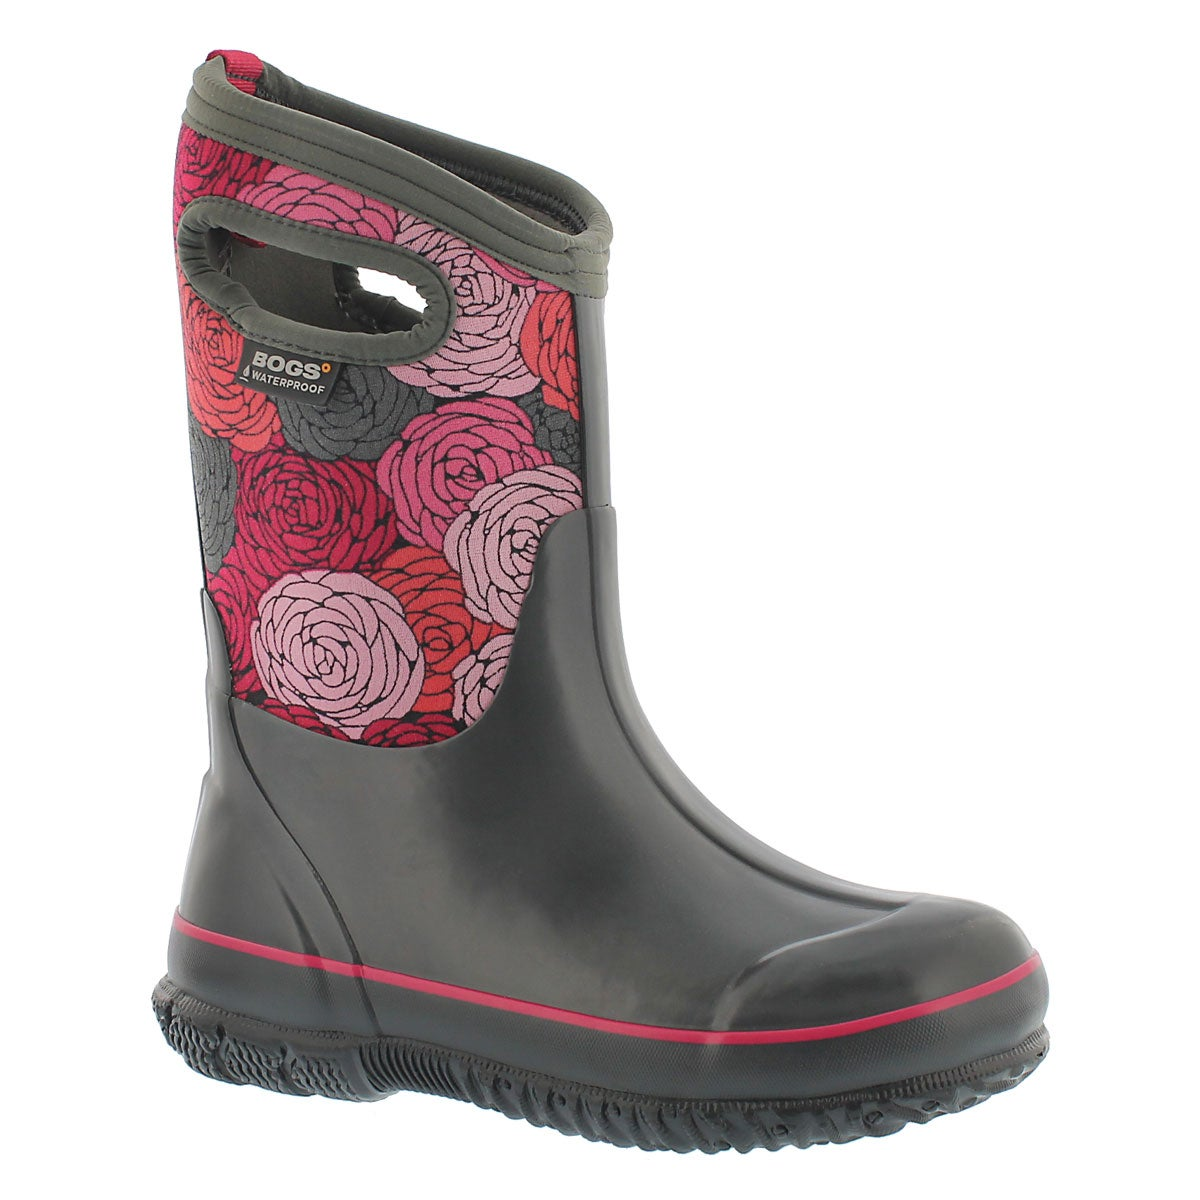 Girls' CLASSIC ROSEY grey multi waterproof boots